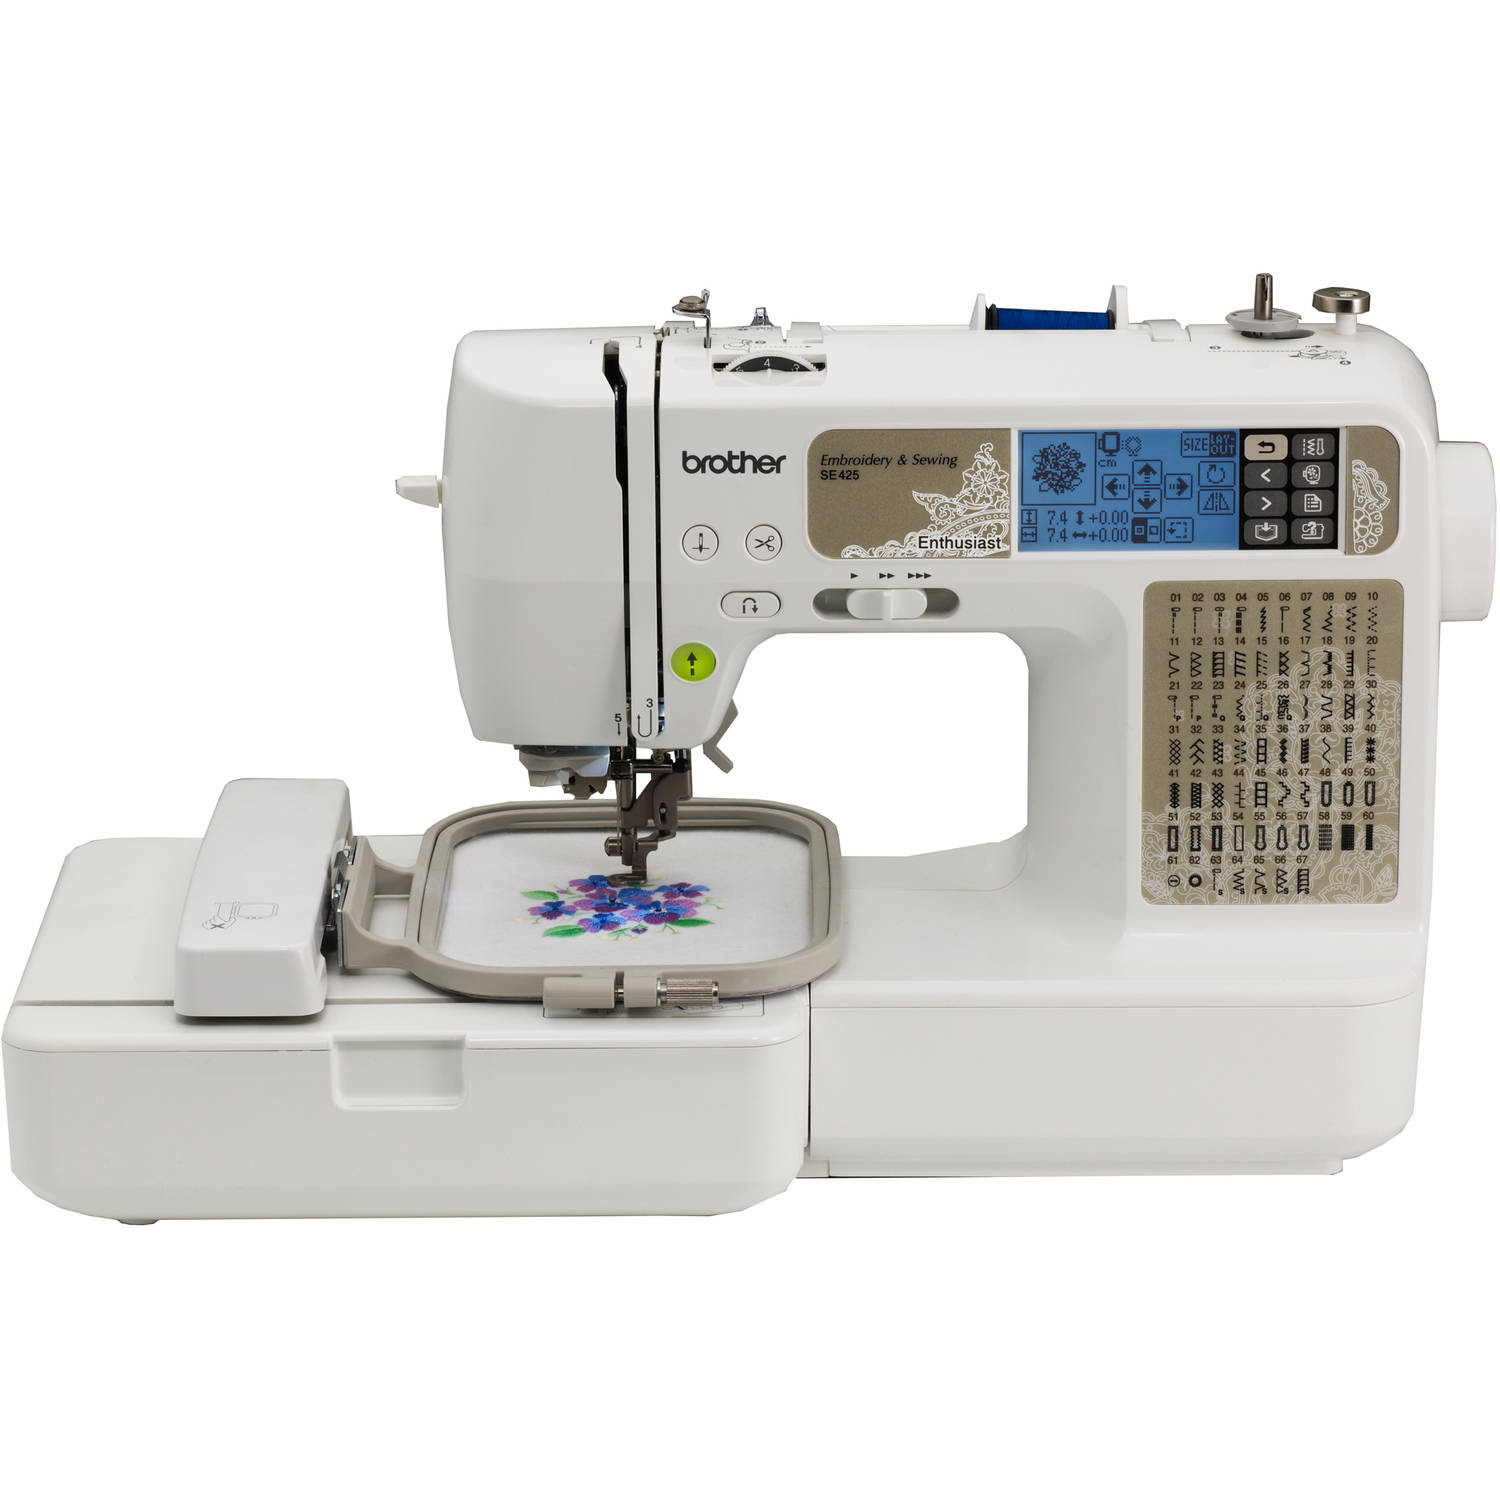 brother sewing and embroidery machine, se425 walmart.com